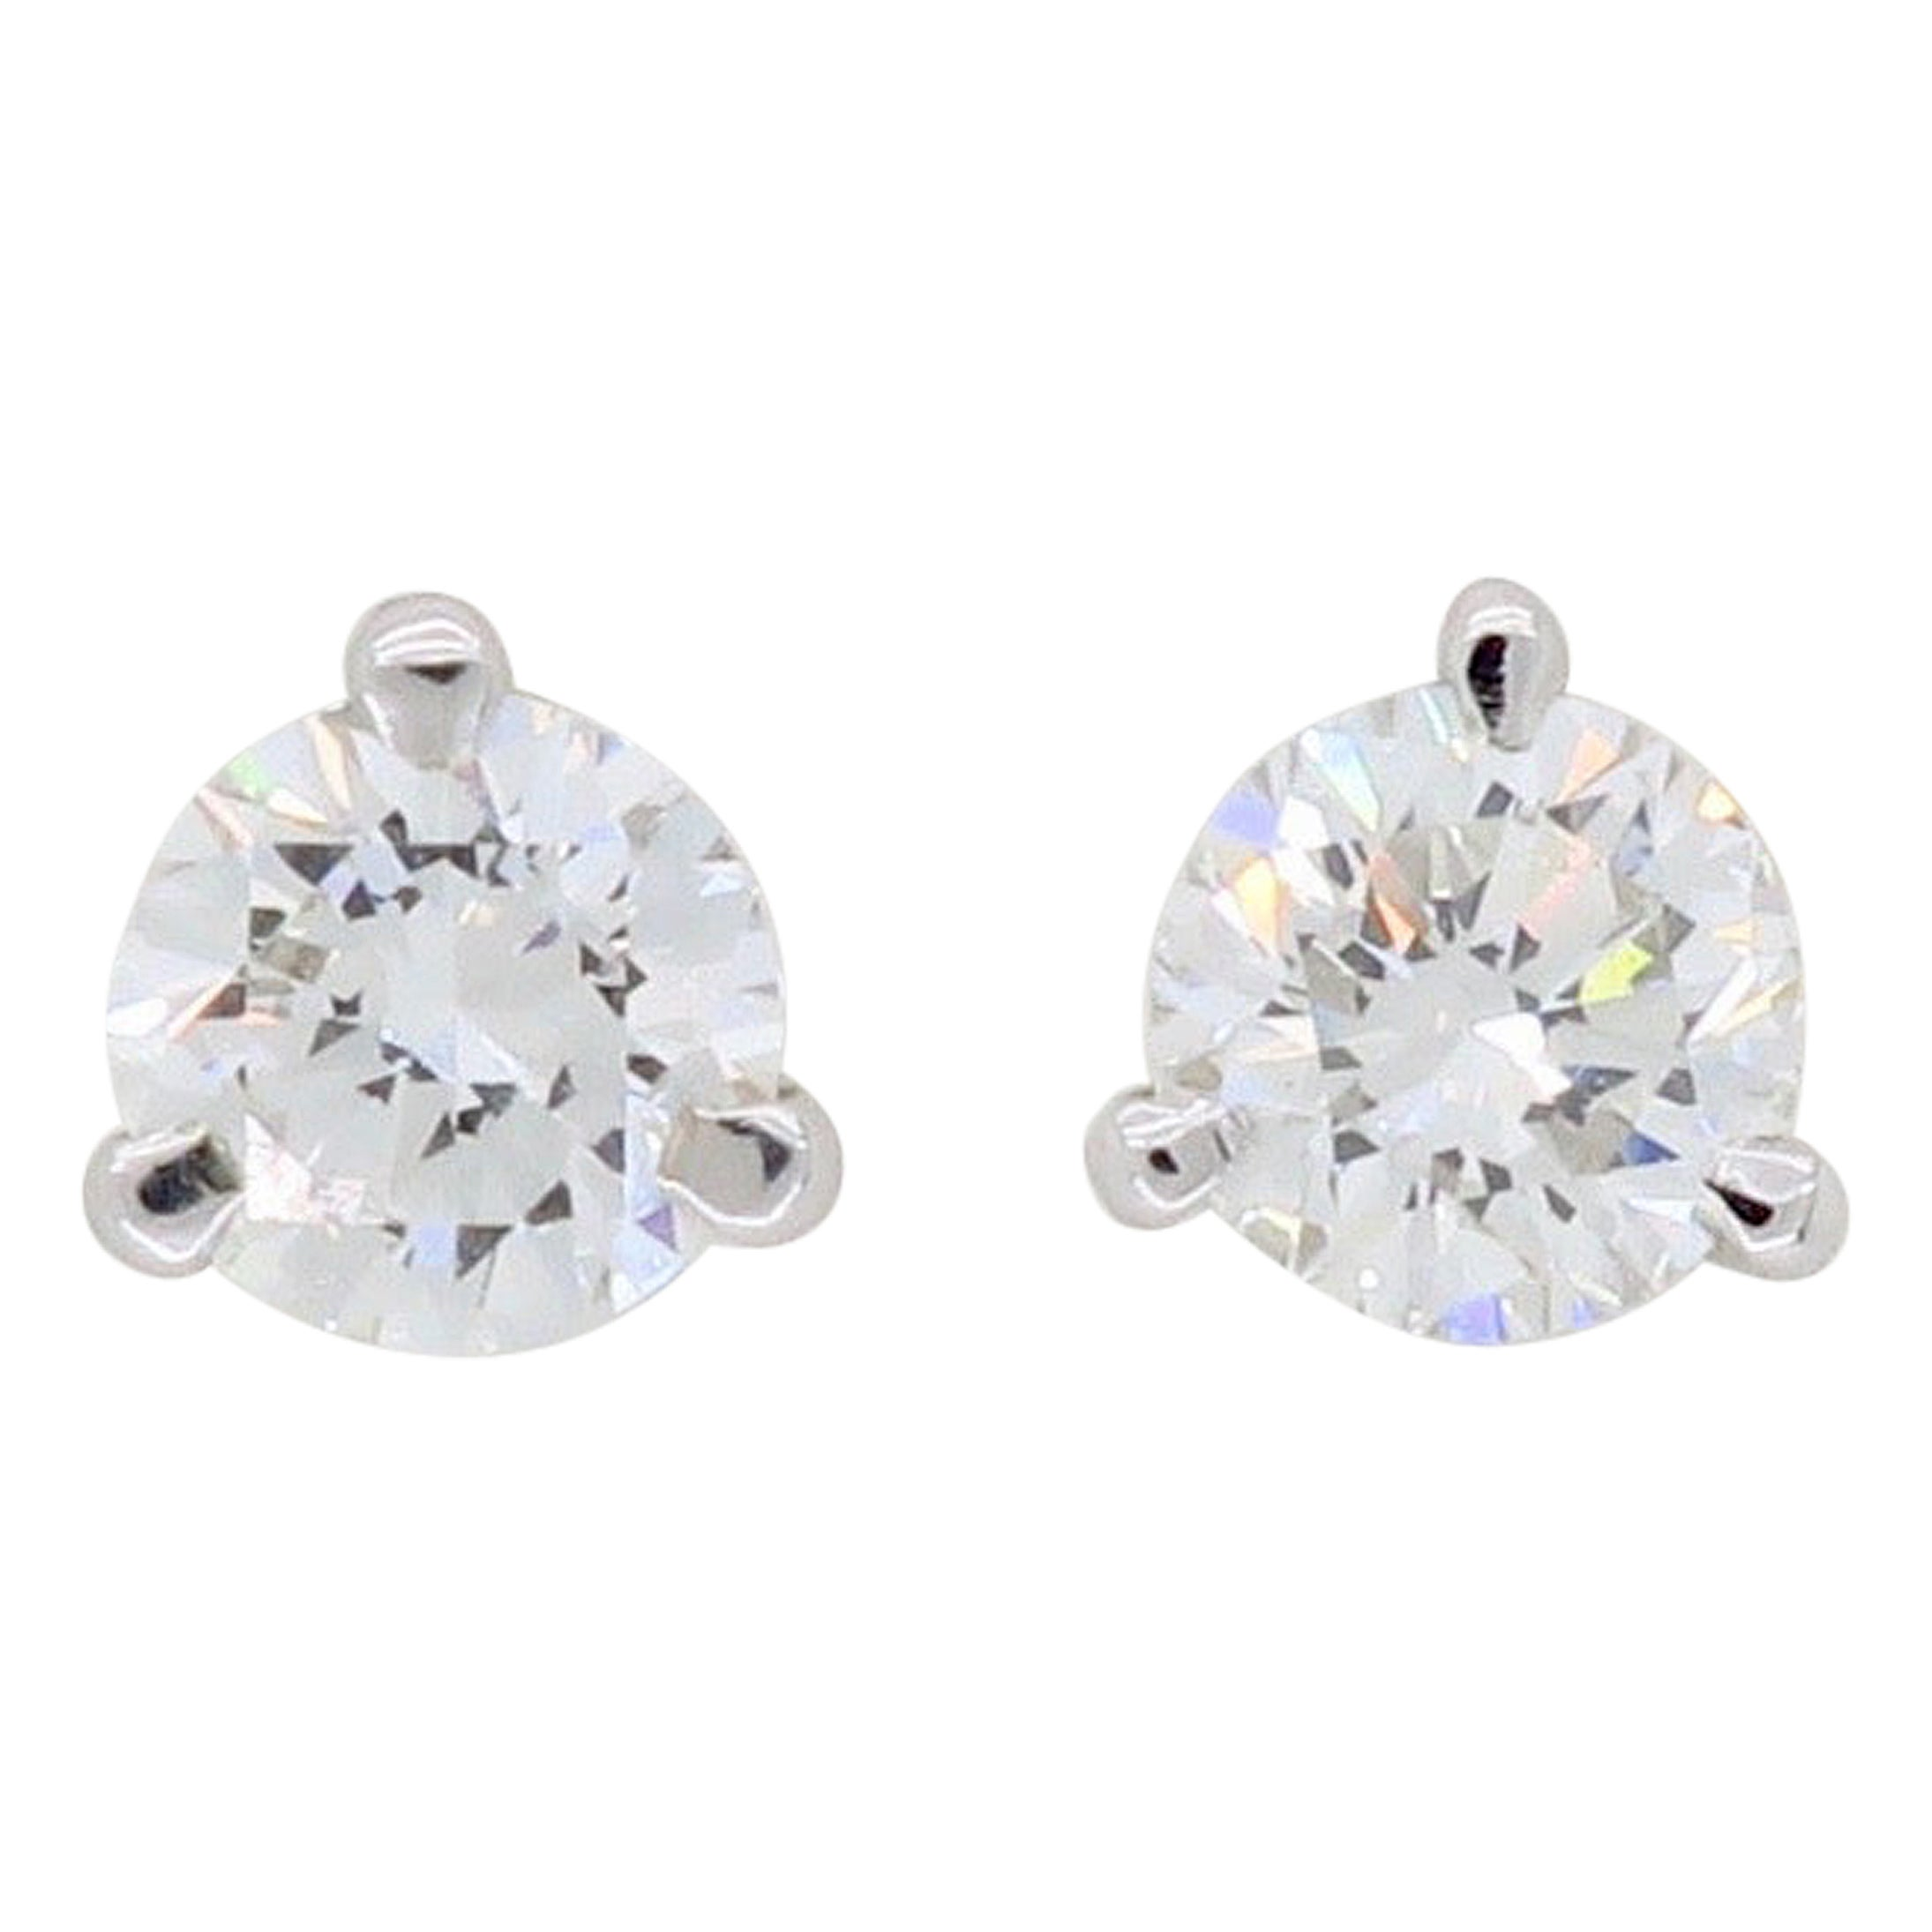 8a7d69e87 Martini Style Diamond Stud Earrings For Sale at 1stdibs